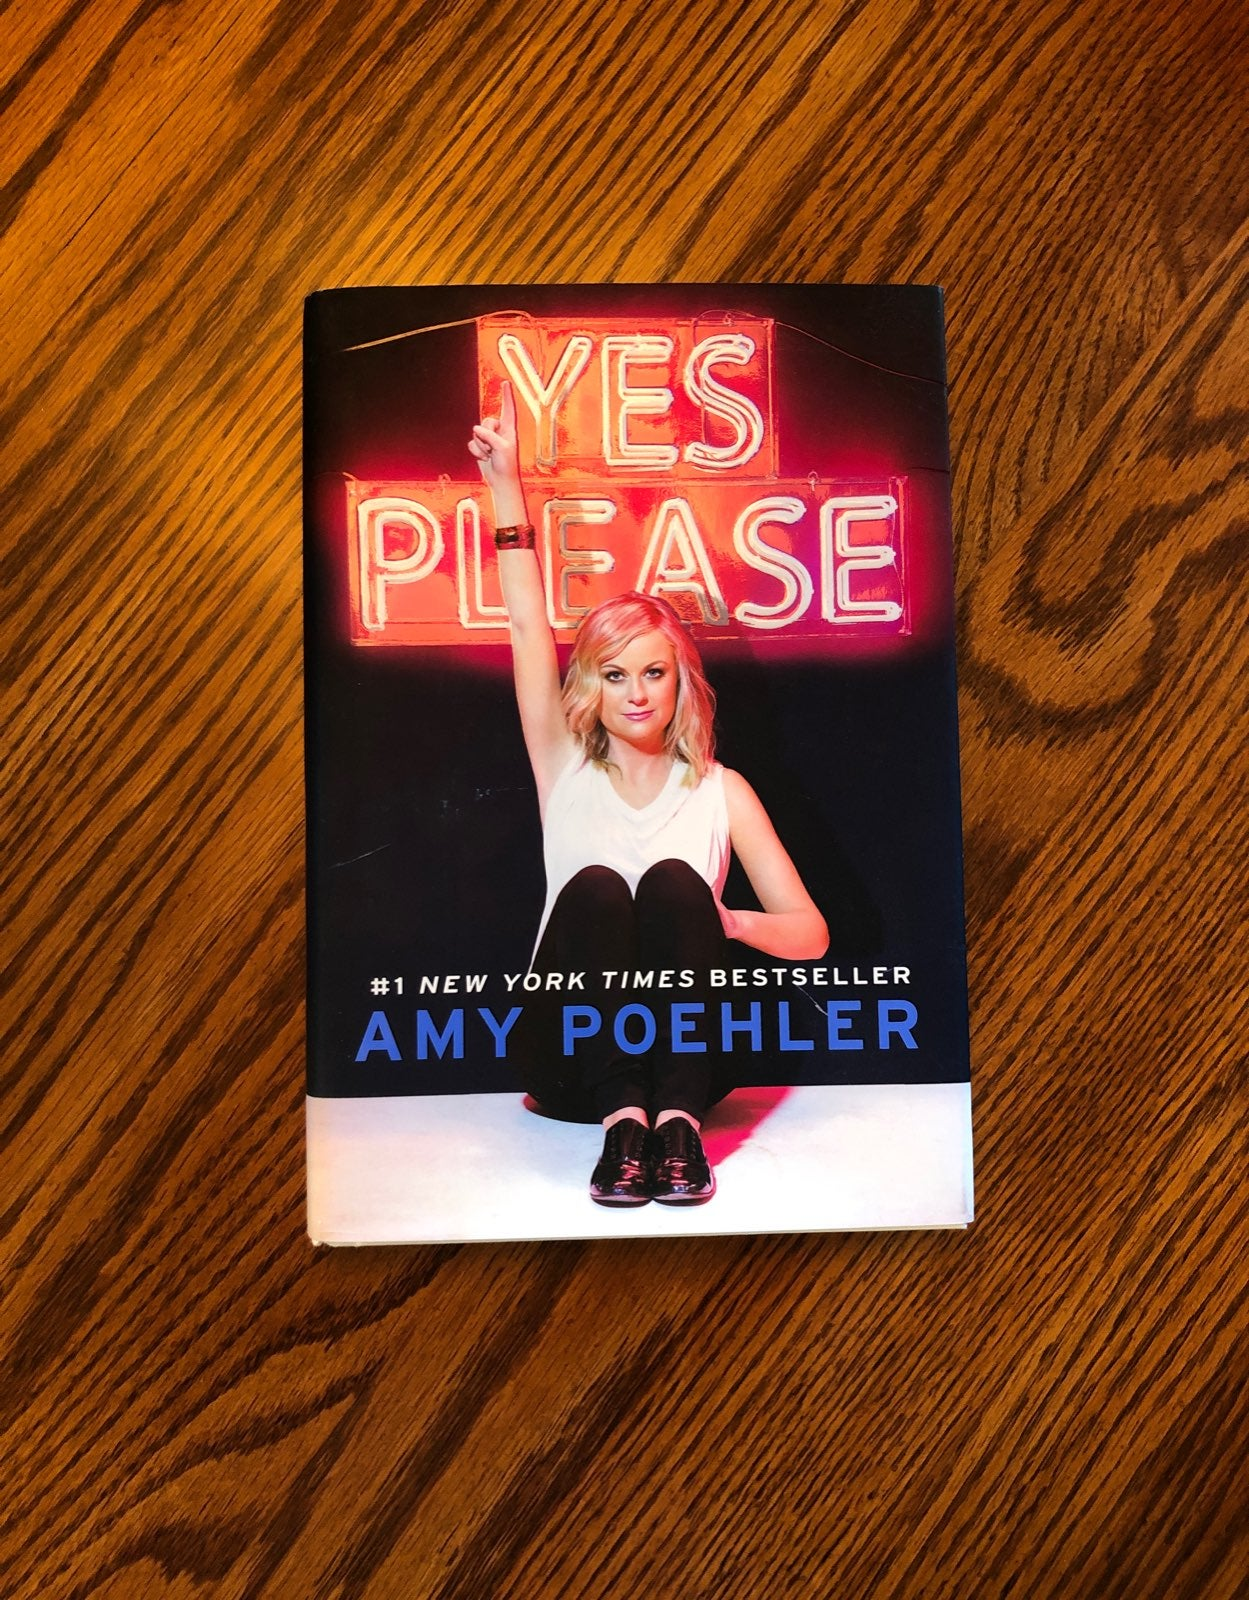 Yes Please by Amy Poehler Book